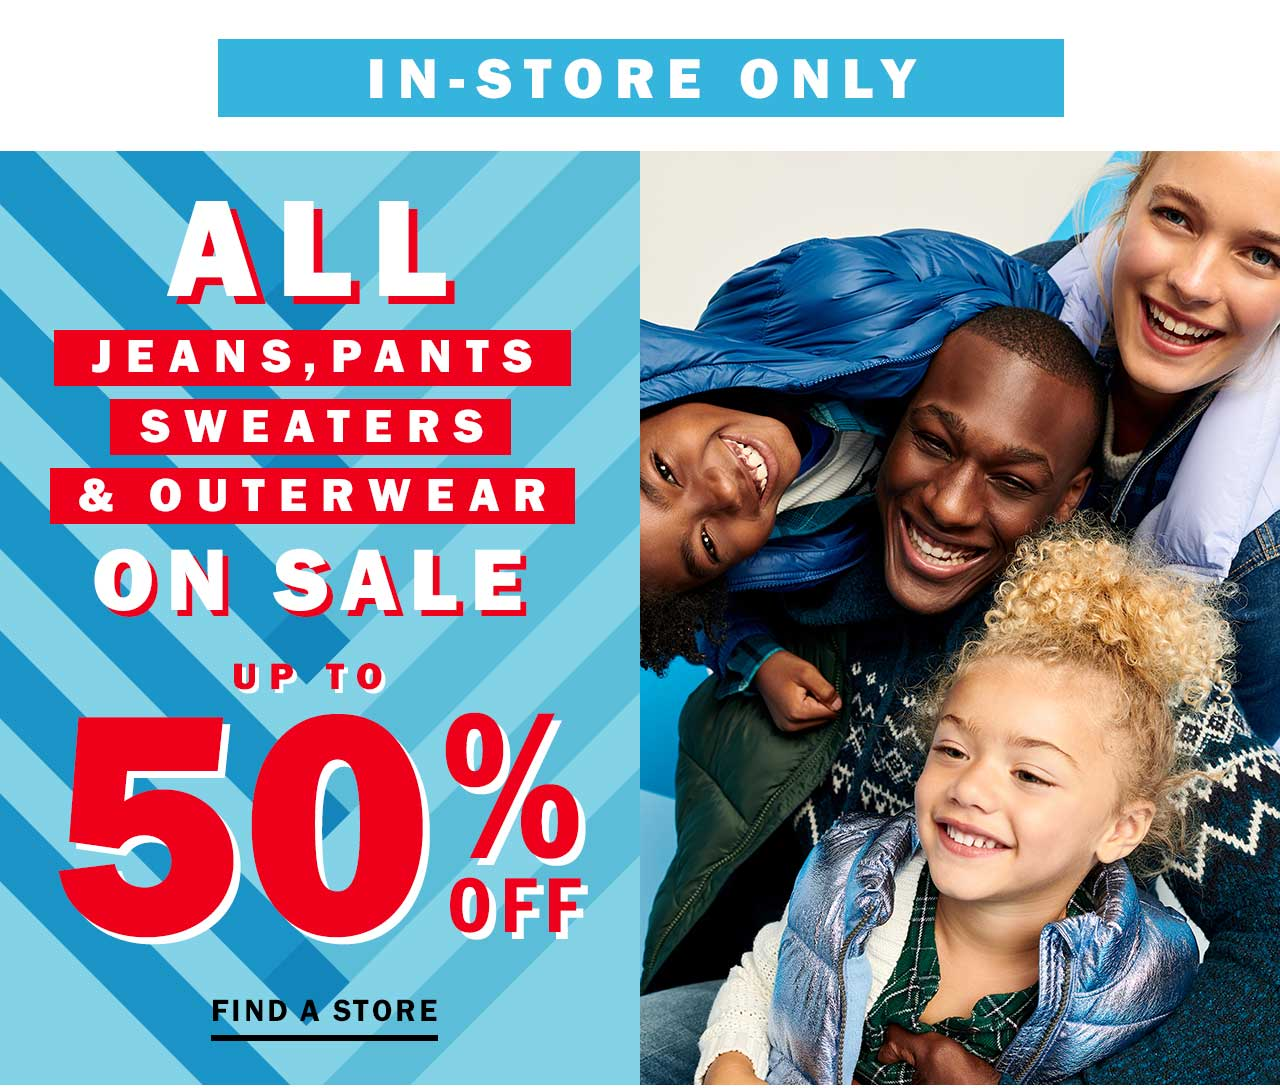 In-store only   Up to 50% off